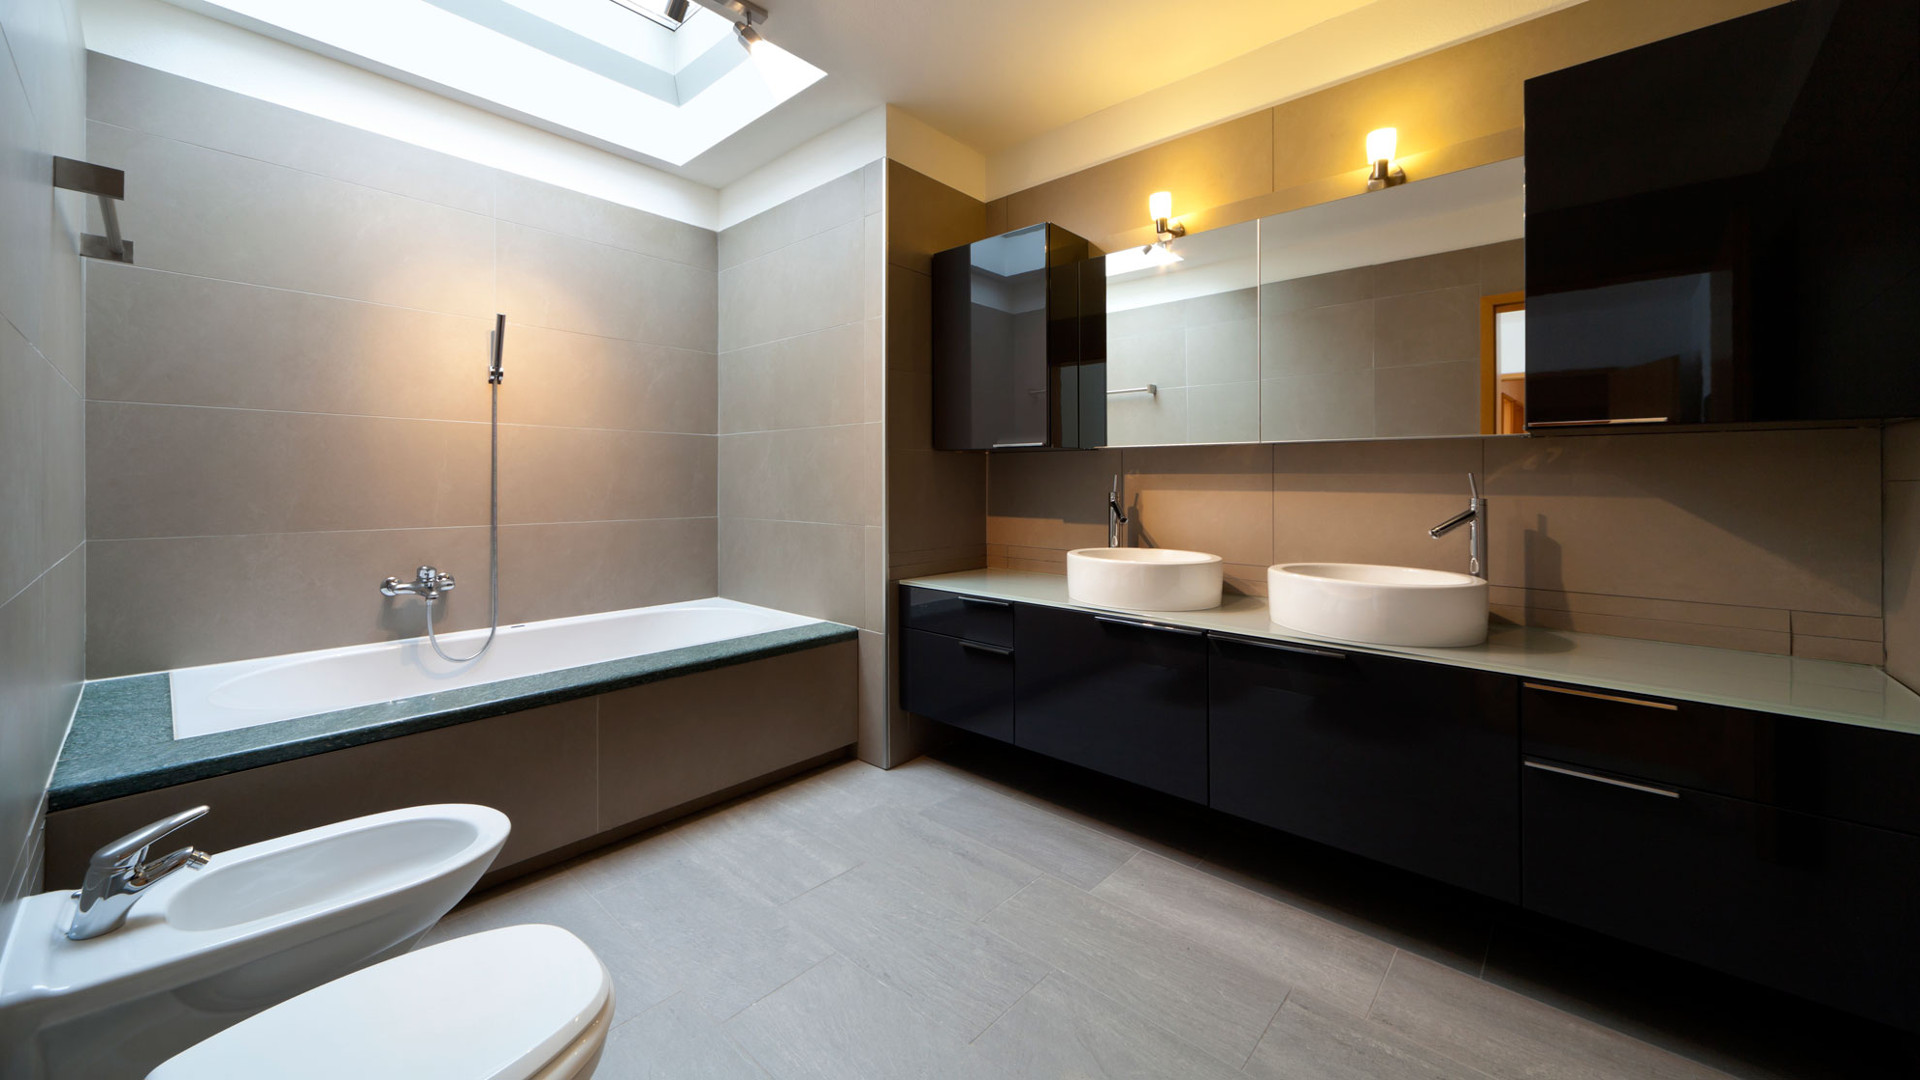 Albertville Minneapolis and Rogers Bathroom Remodeling